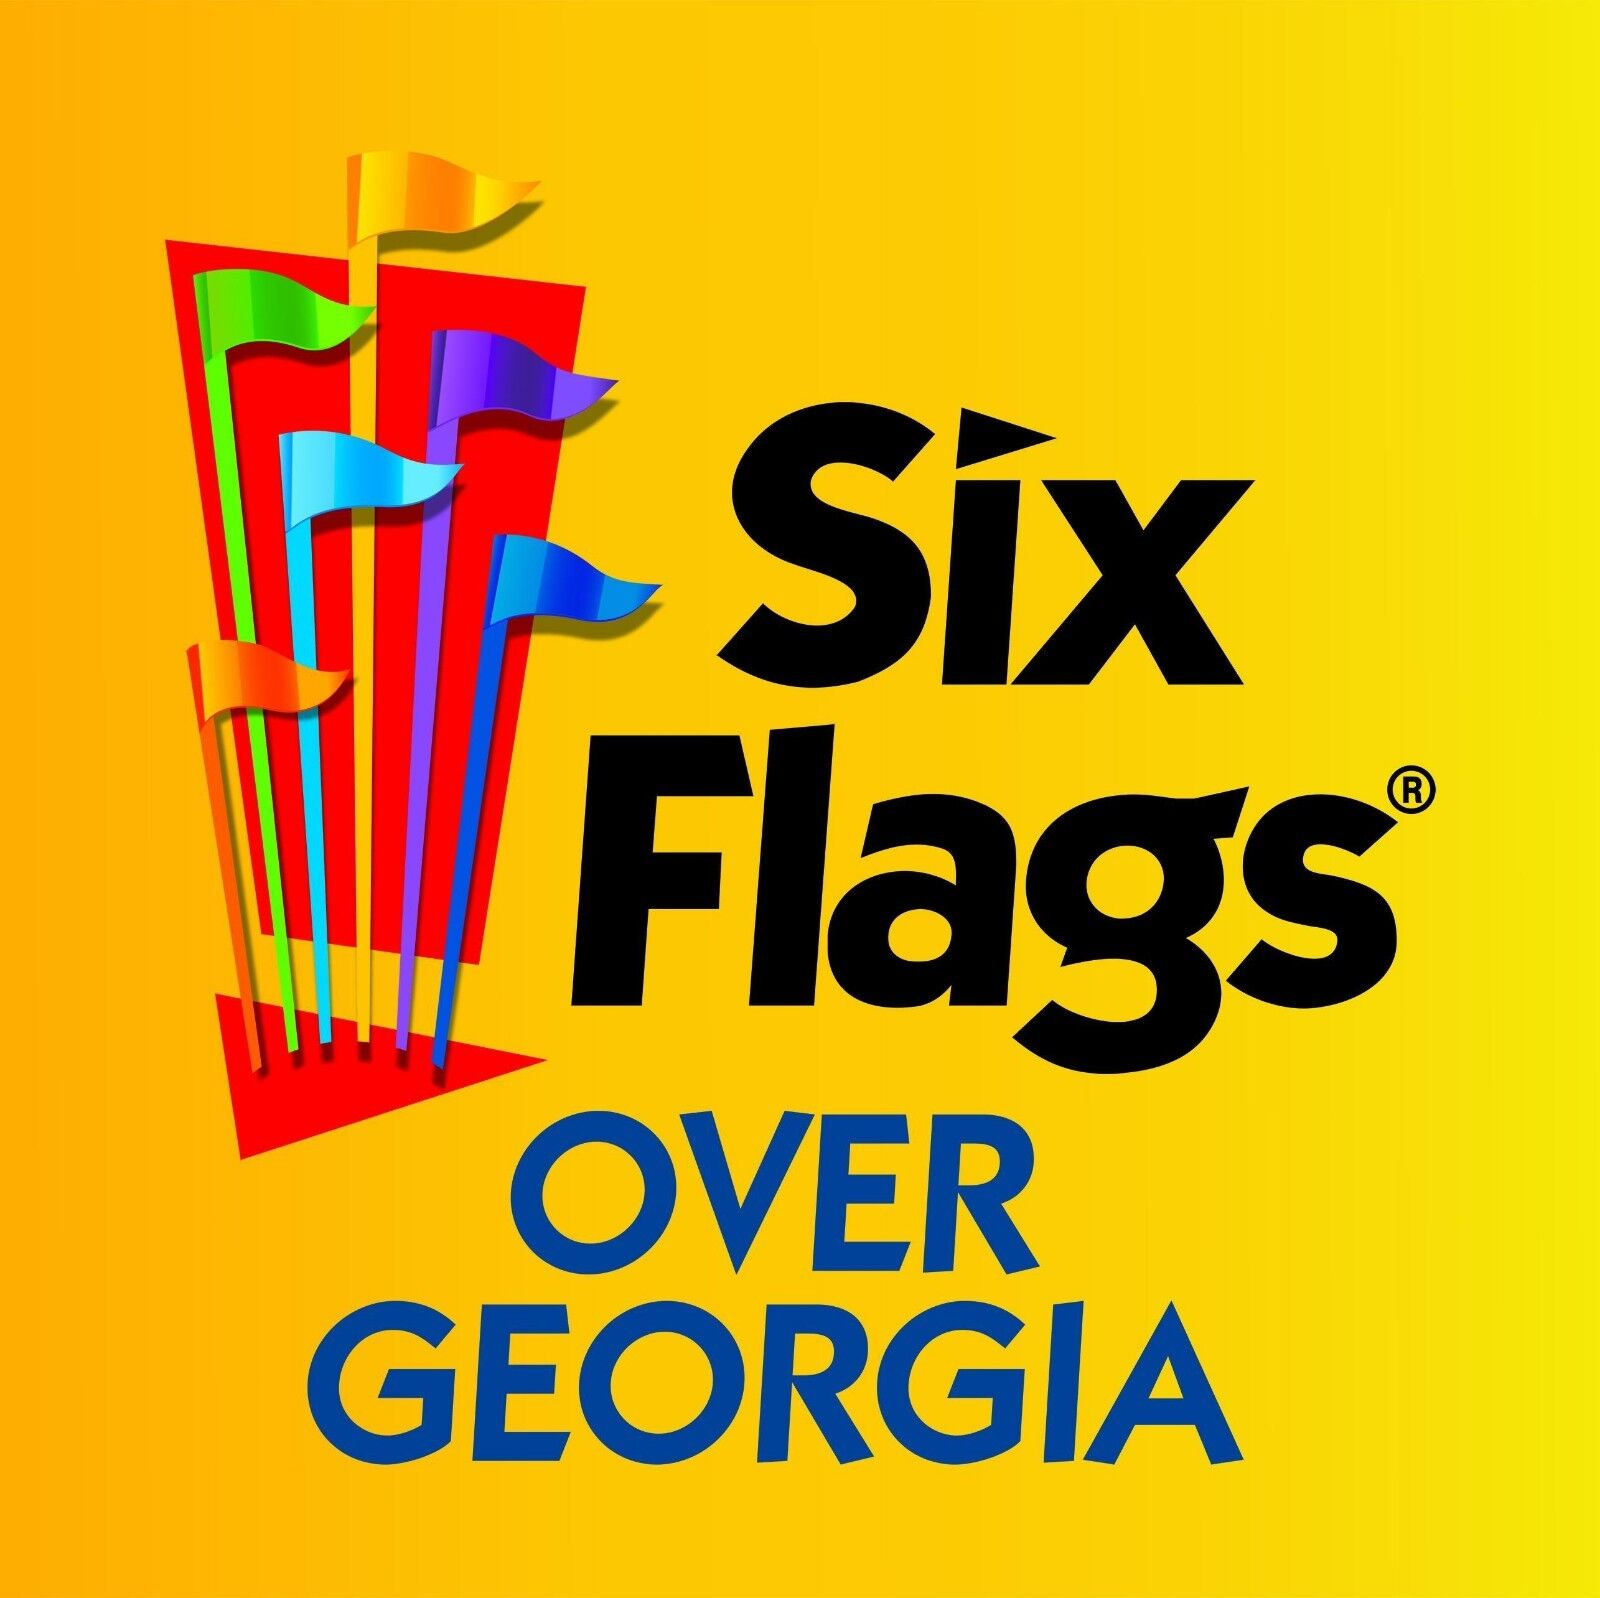 SIX FLAGS OVER GEORGIA/ FRIGHT FEST TICKETS $32  A PROMO SAVINGS DISCOUNT TOOL